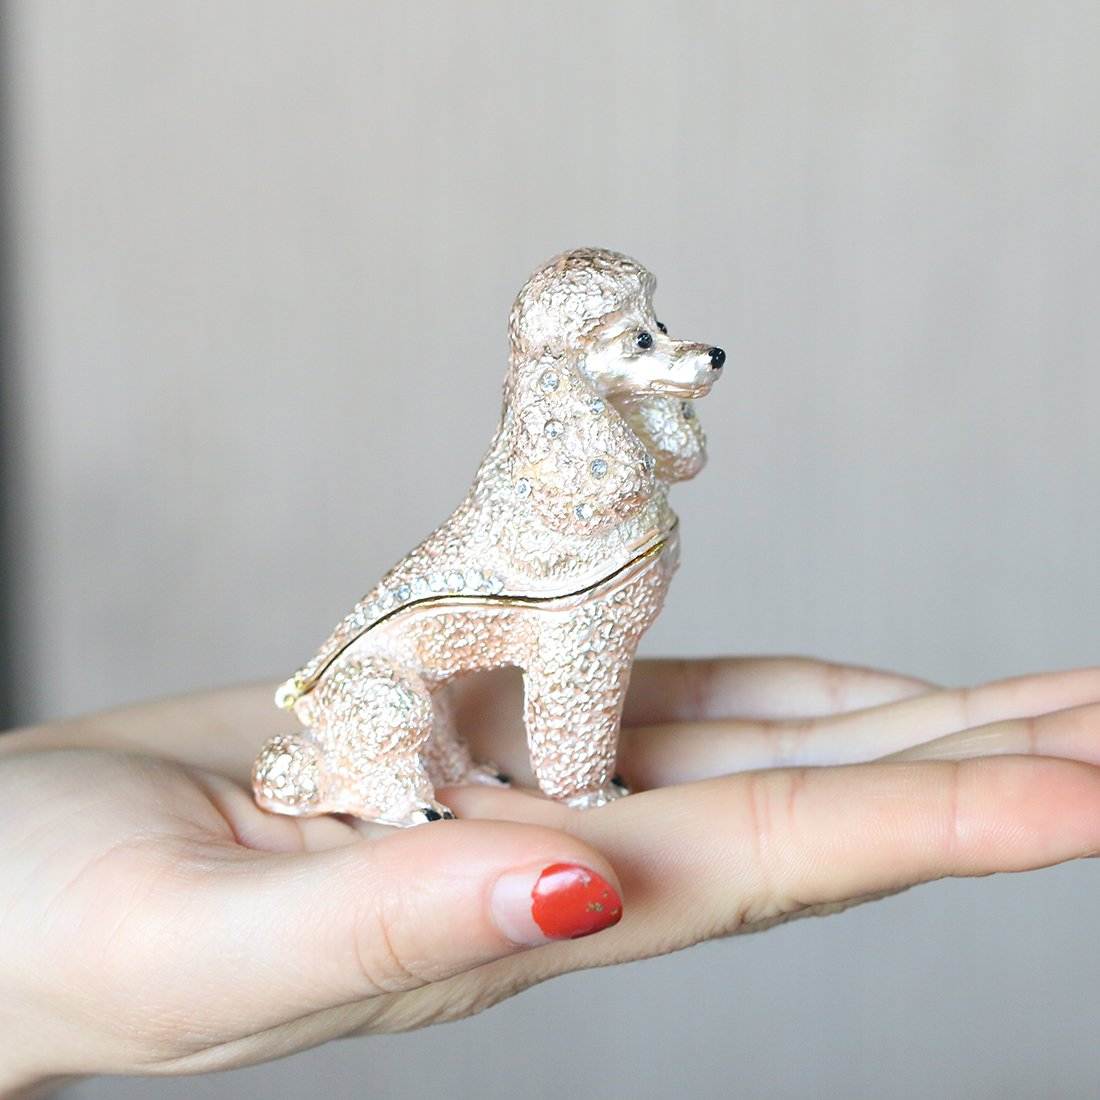 YU FENG Sled Dog Jewelry Trinket Boxes Hinged Animal Collectible Figurine Box Hand Painted Jeweled Trinket Box for Home Decor